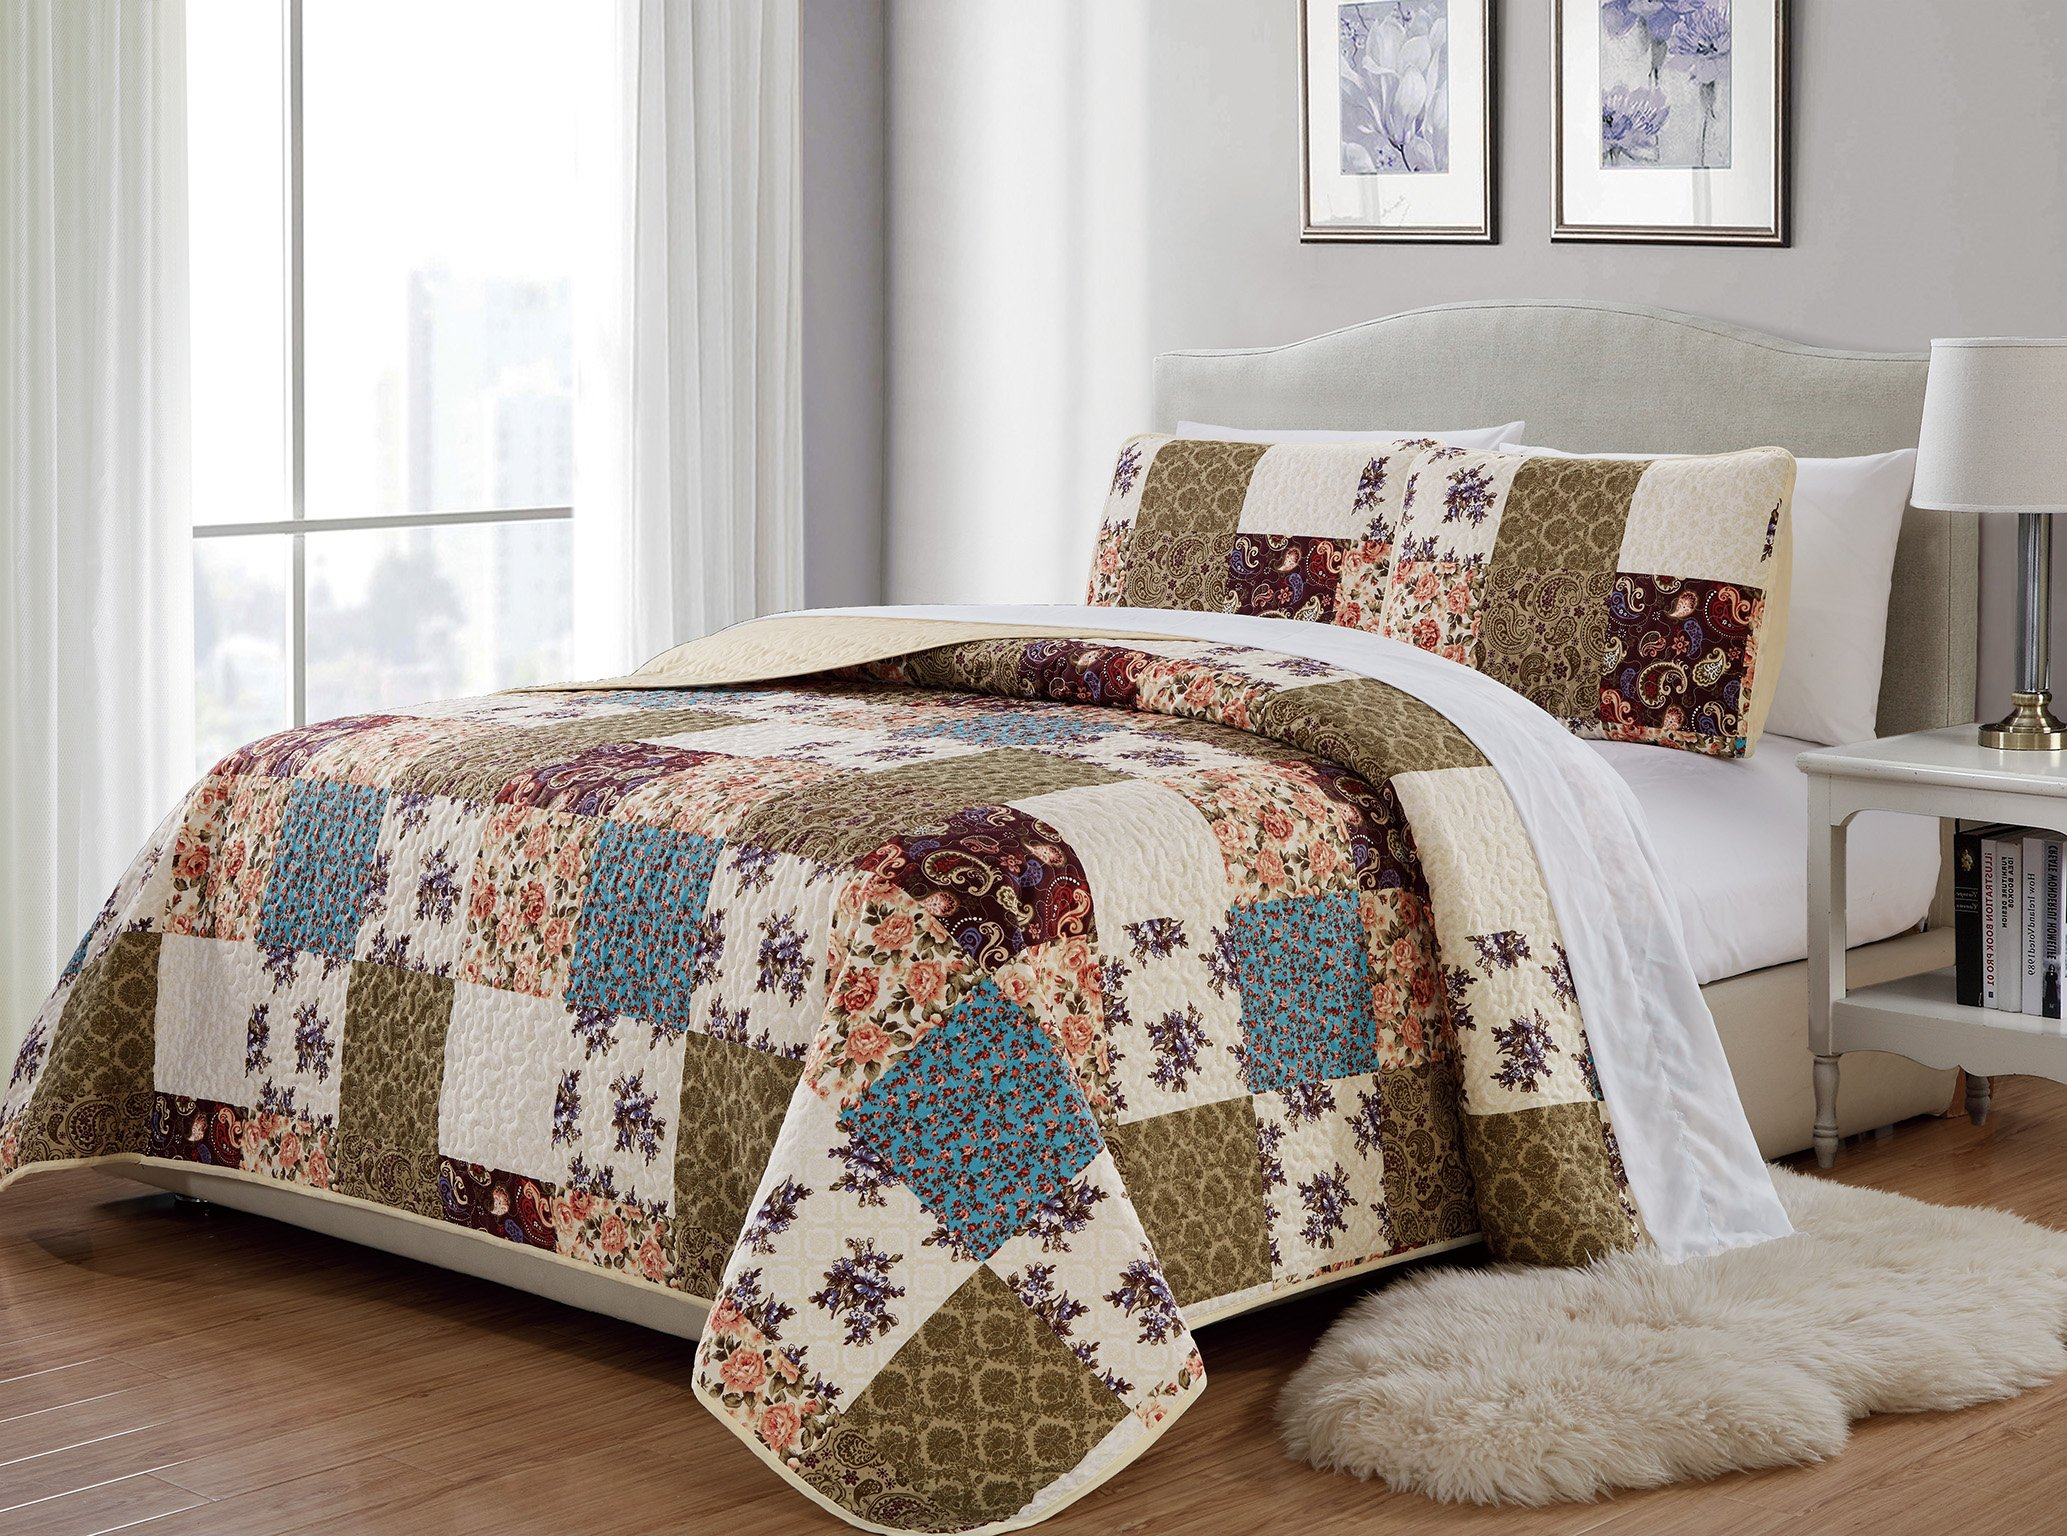 Mk Collection 3pc Bedspread Coverlet Quilted Flower Butterfly Off White Navy Blue Teal Green Red King//California King Over Size 118 x 95 #Stella New